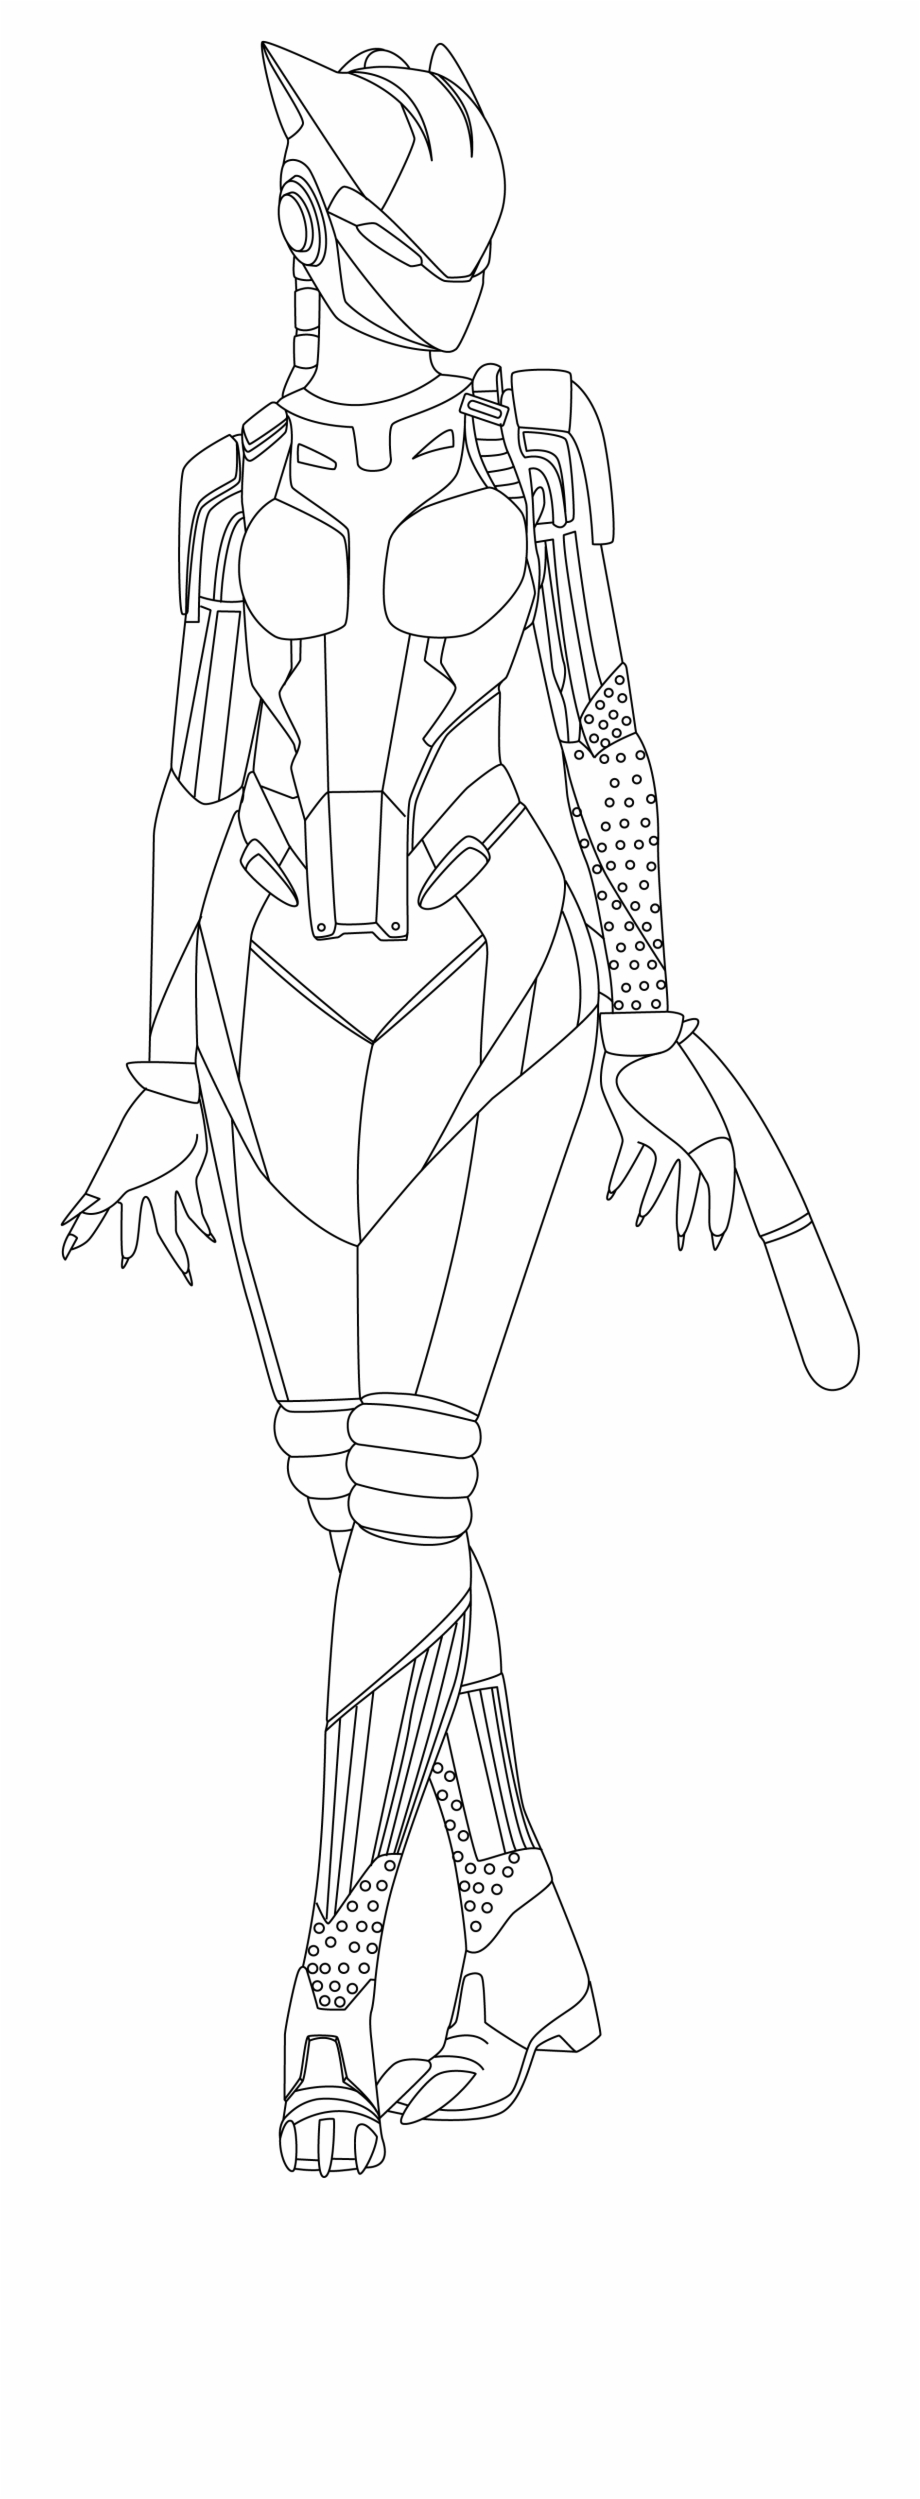 Leviathan Skin - Fortnite Coloring Pages Ice King ...